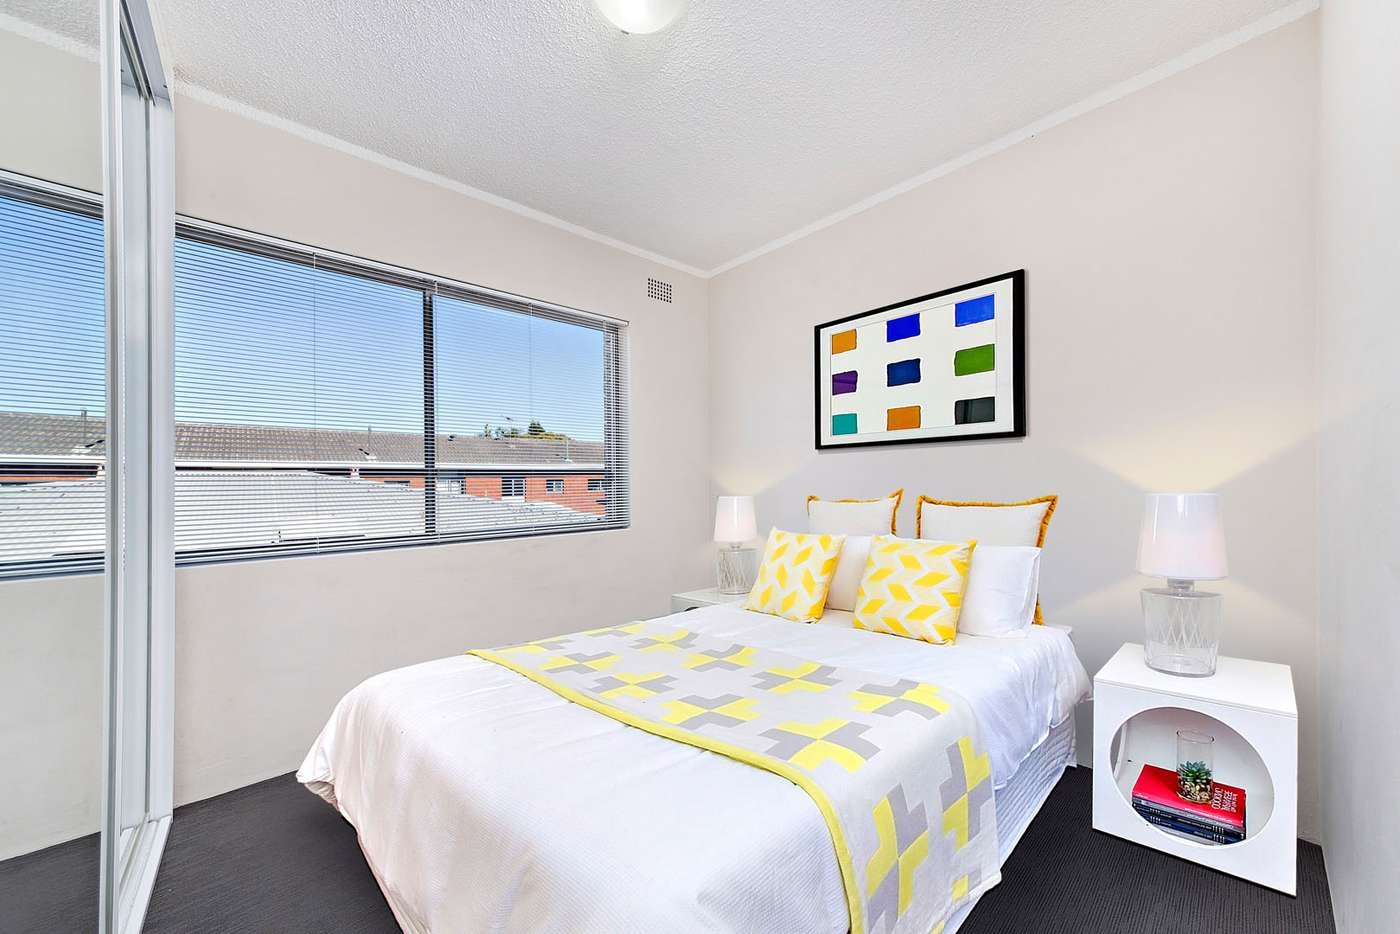 Fifth view of Homely apartment listing, 6/88 Burfitt Street, Leichhardt NSW 2040